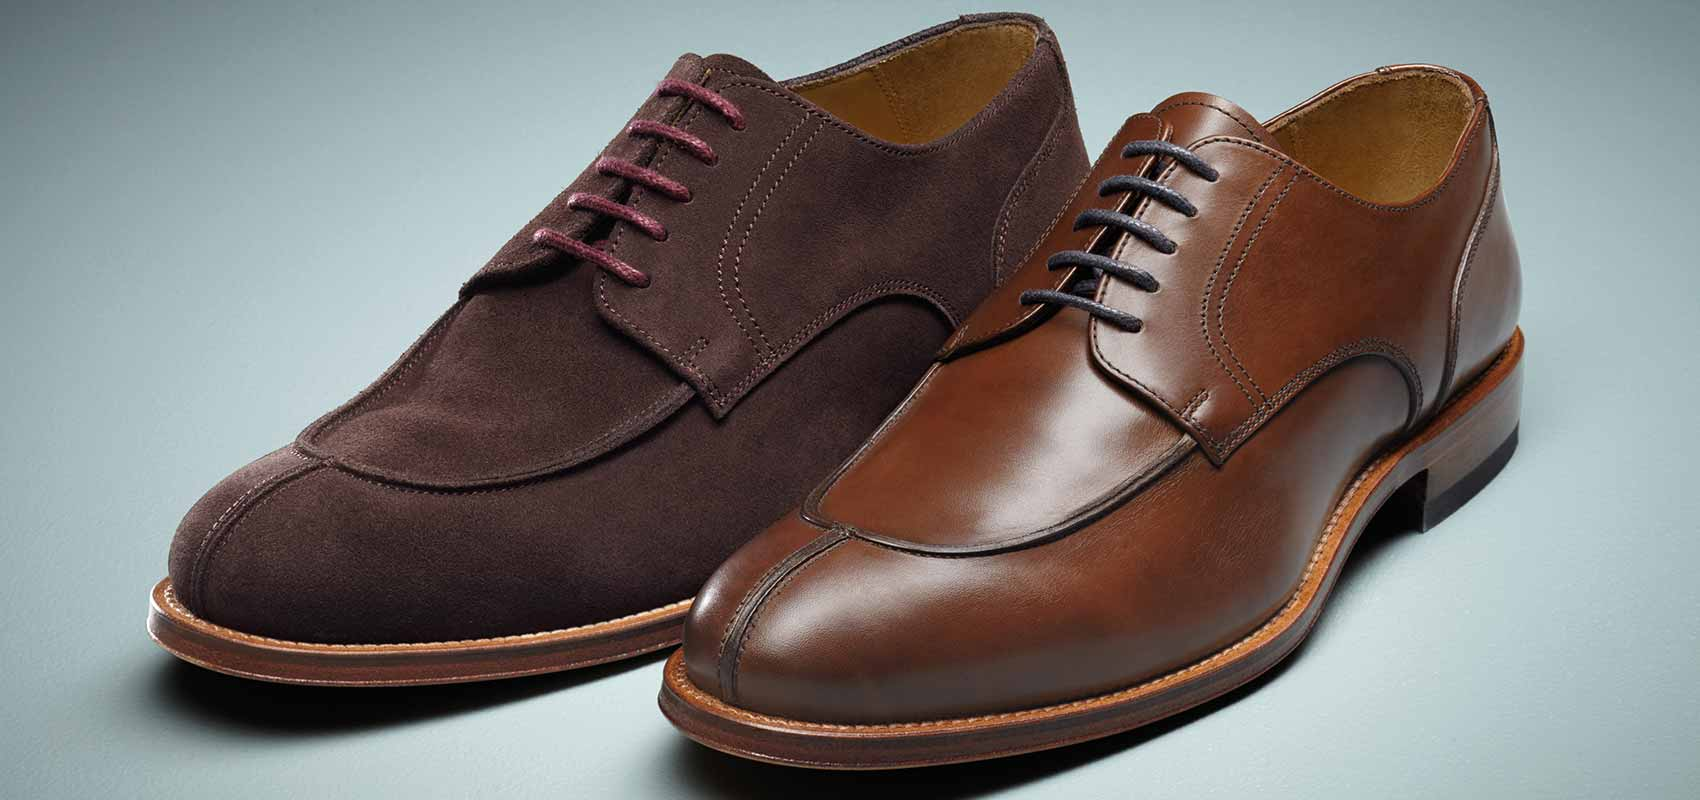 Charles Tyrwhitt Goodyear welted shoes